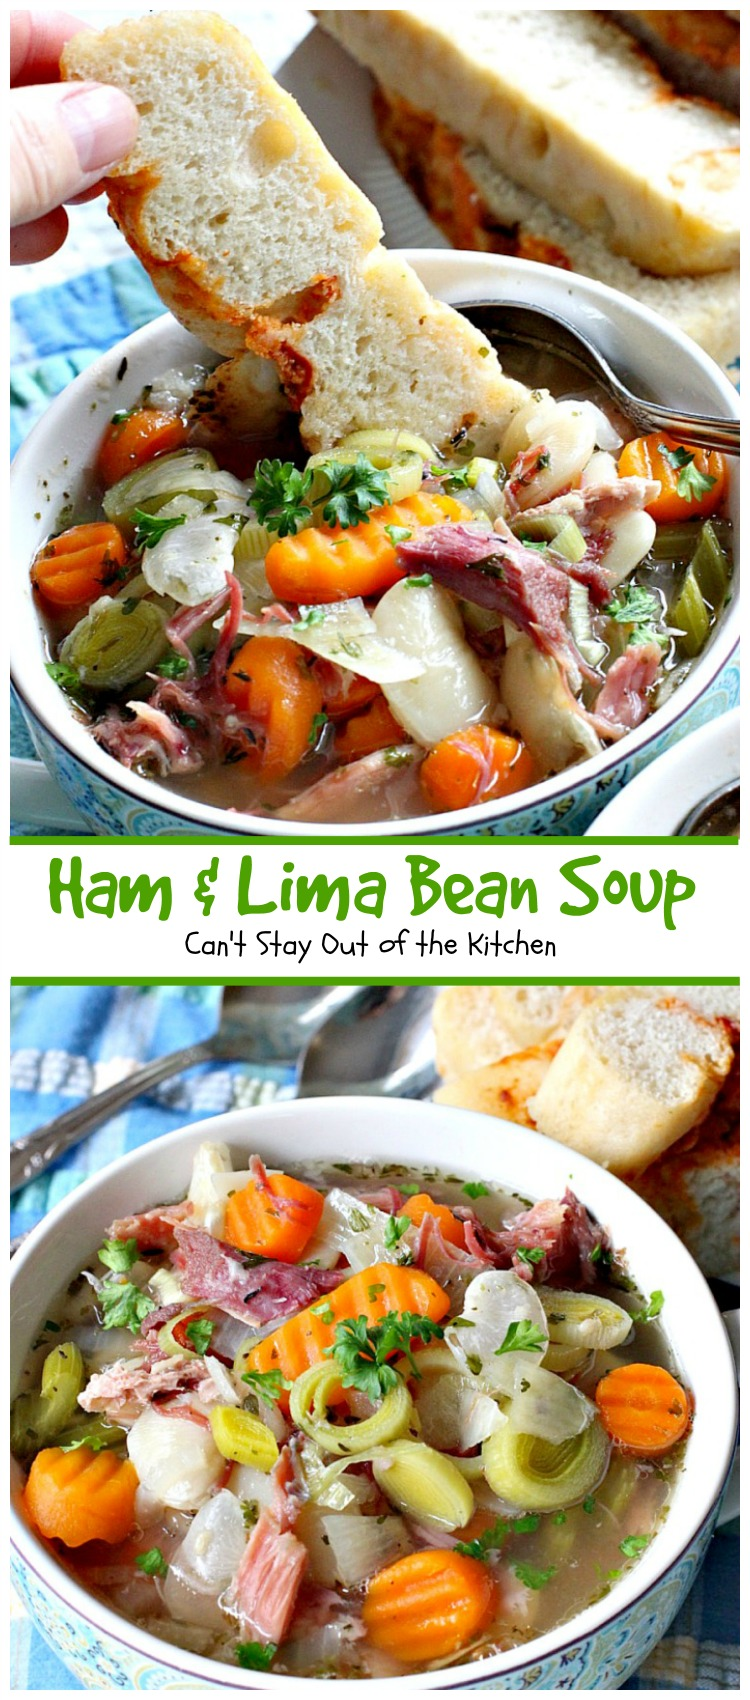 Ham and Lima Bean Soup | Can't Stay Out of the Kitchen